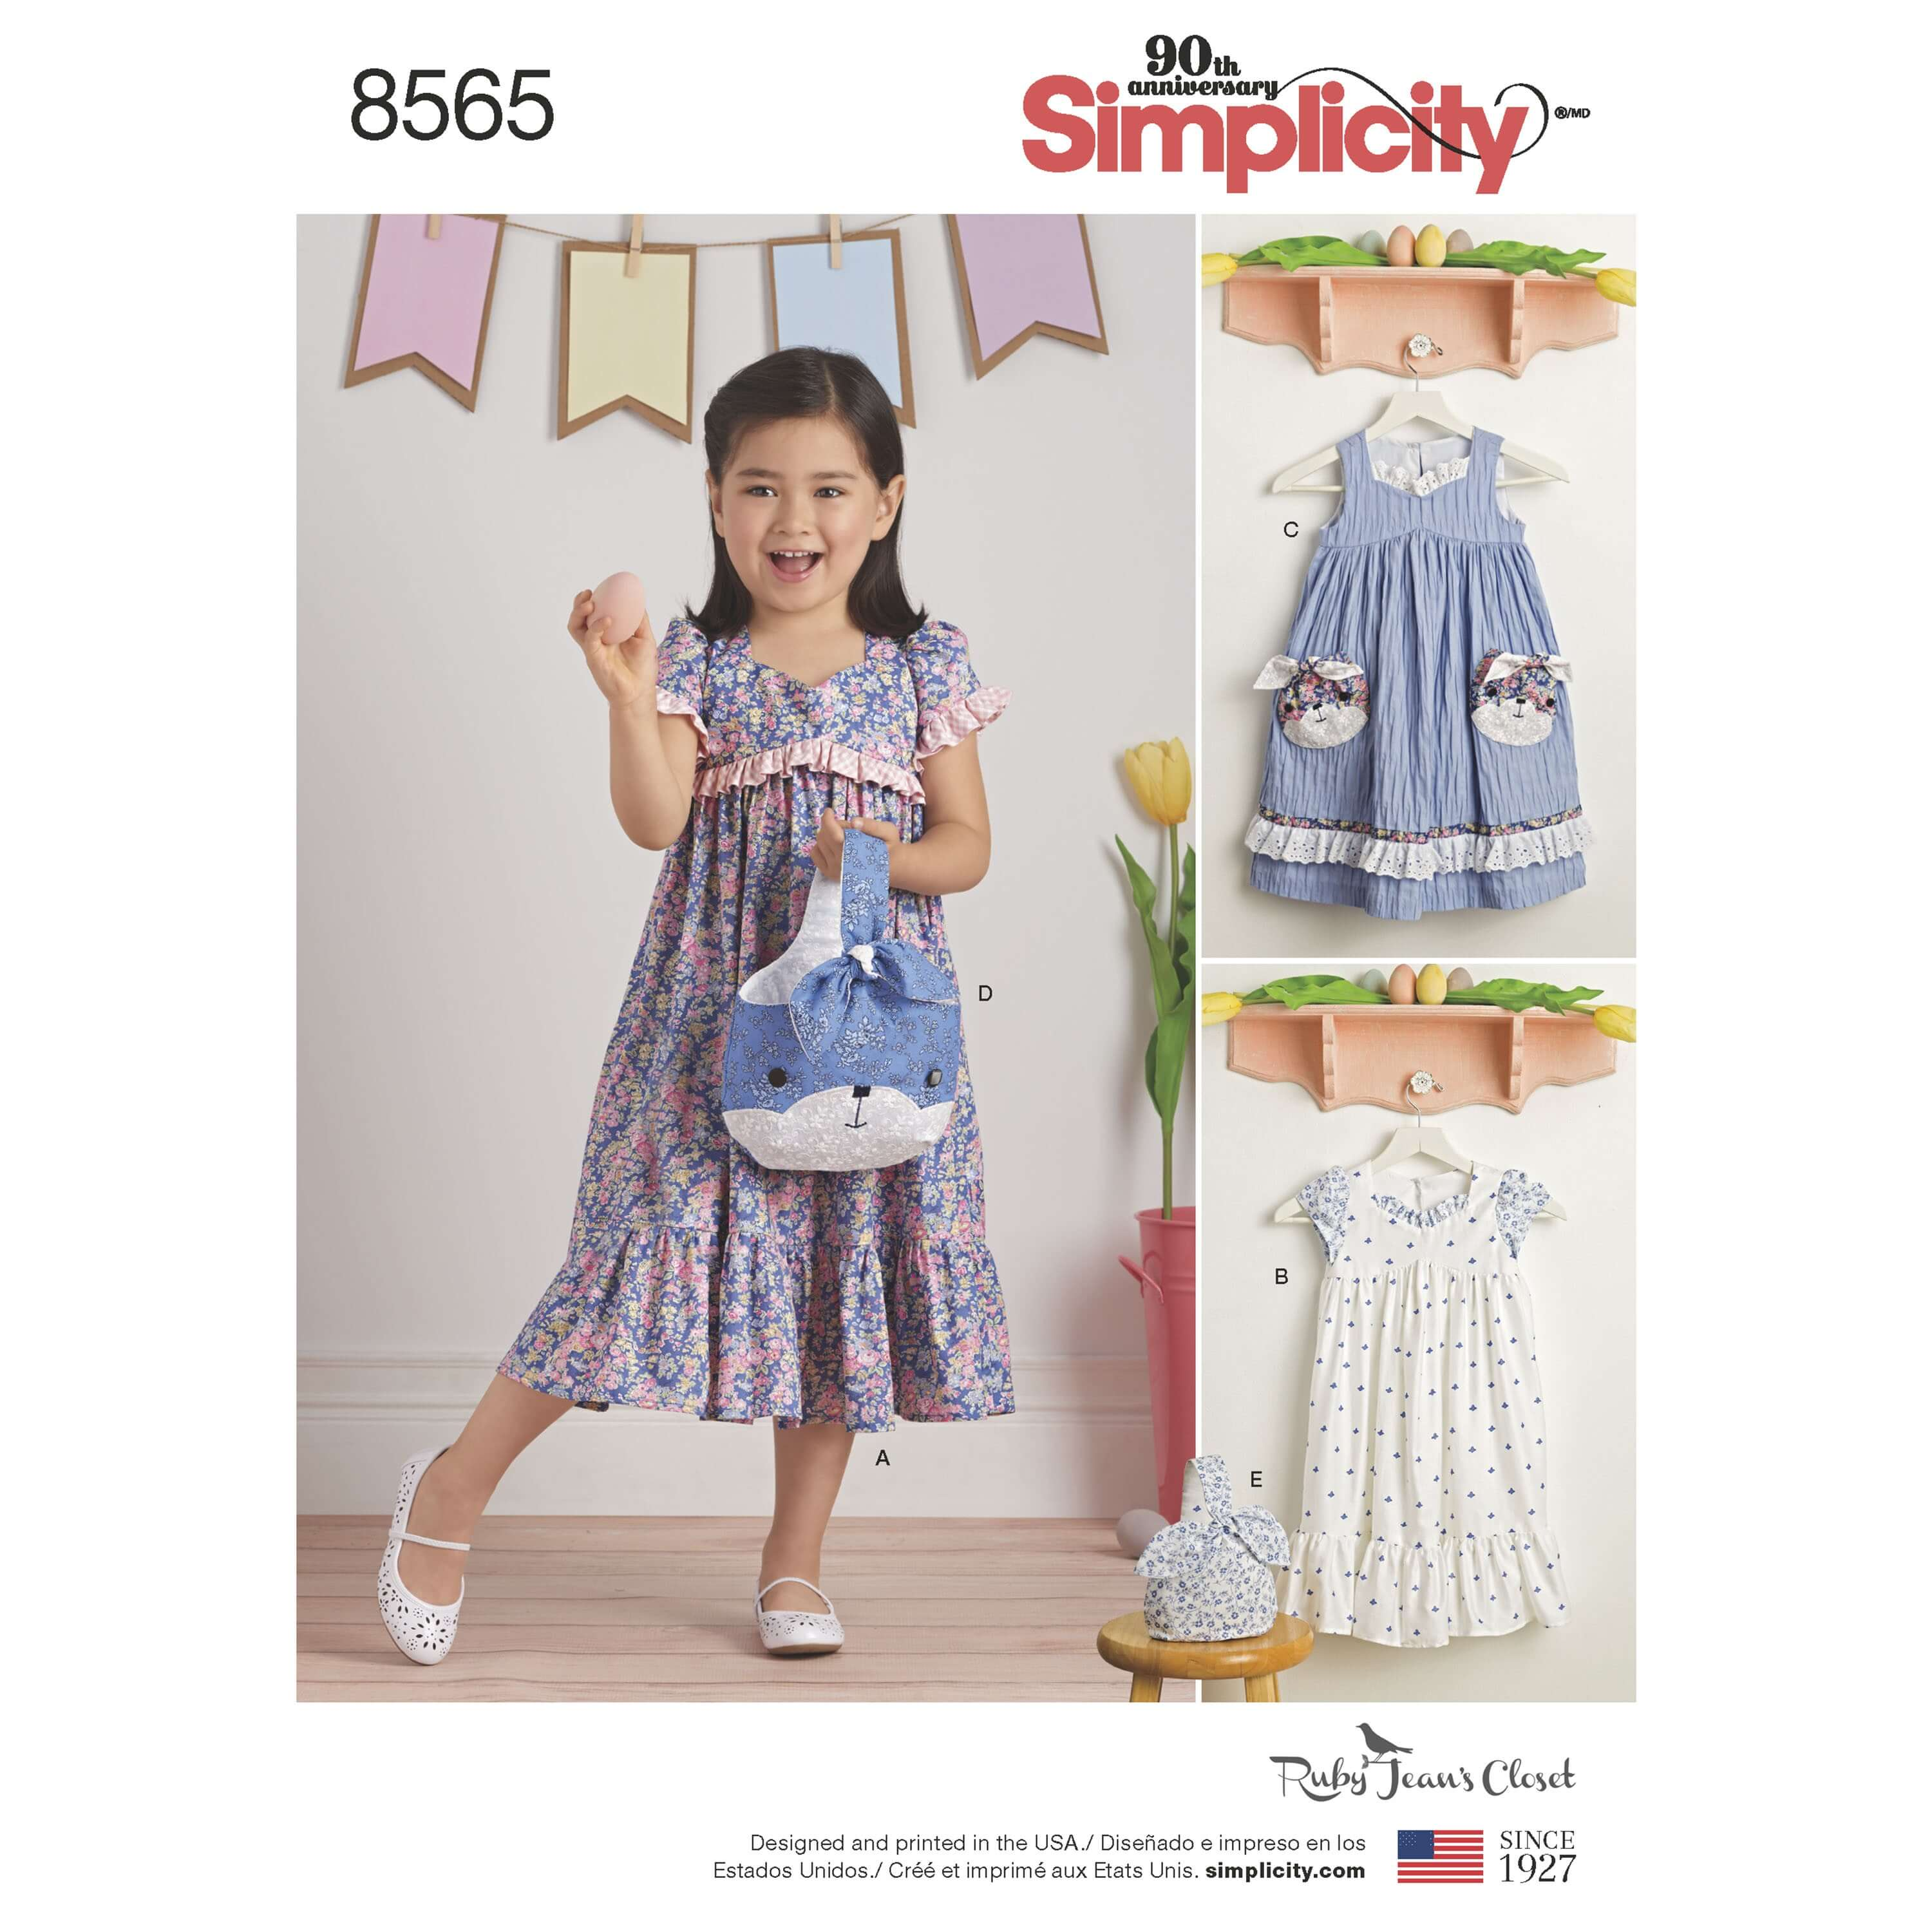 Simplicity Sewing Pattern 8565 Children's Dresses and Bags by Ruby Jean